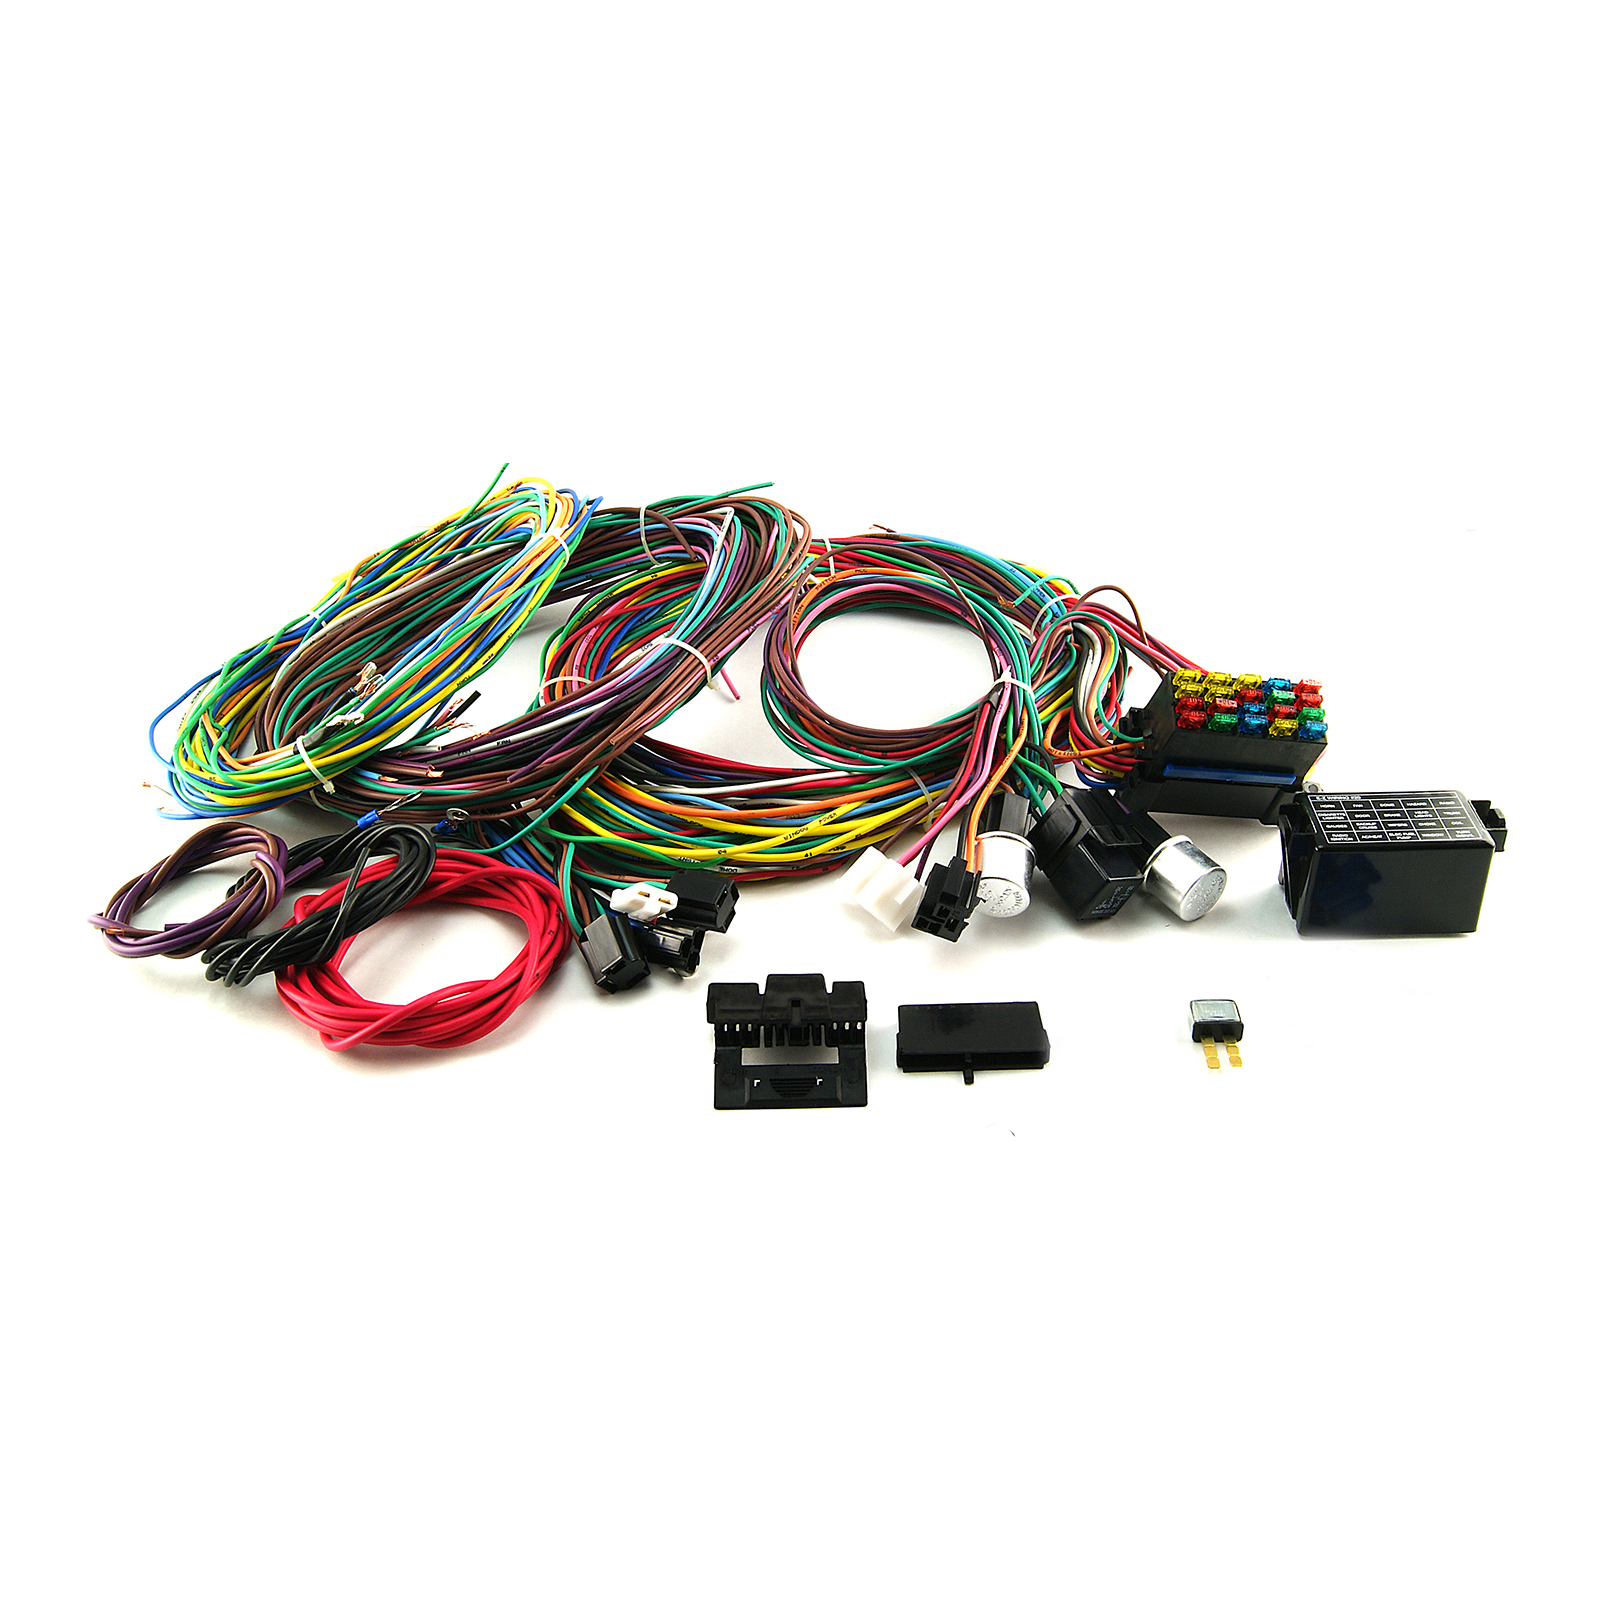 Automotive Wiring Harness Uk : Universal circuit wiring harness kit street rod hot